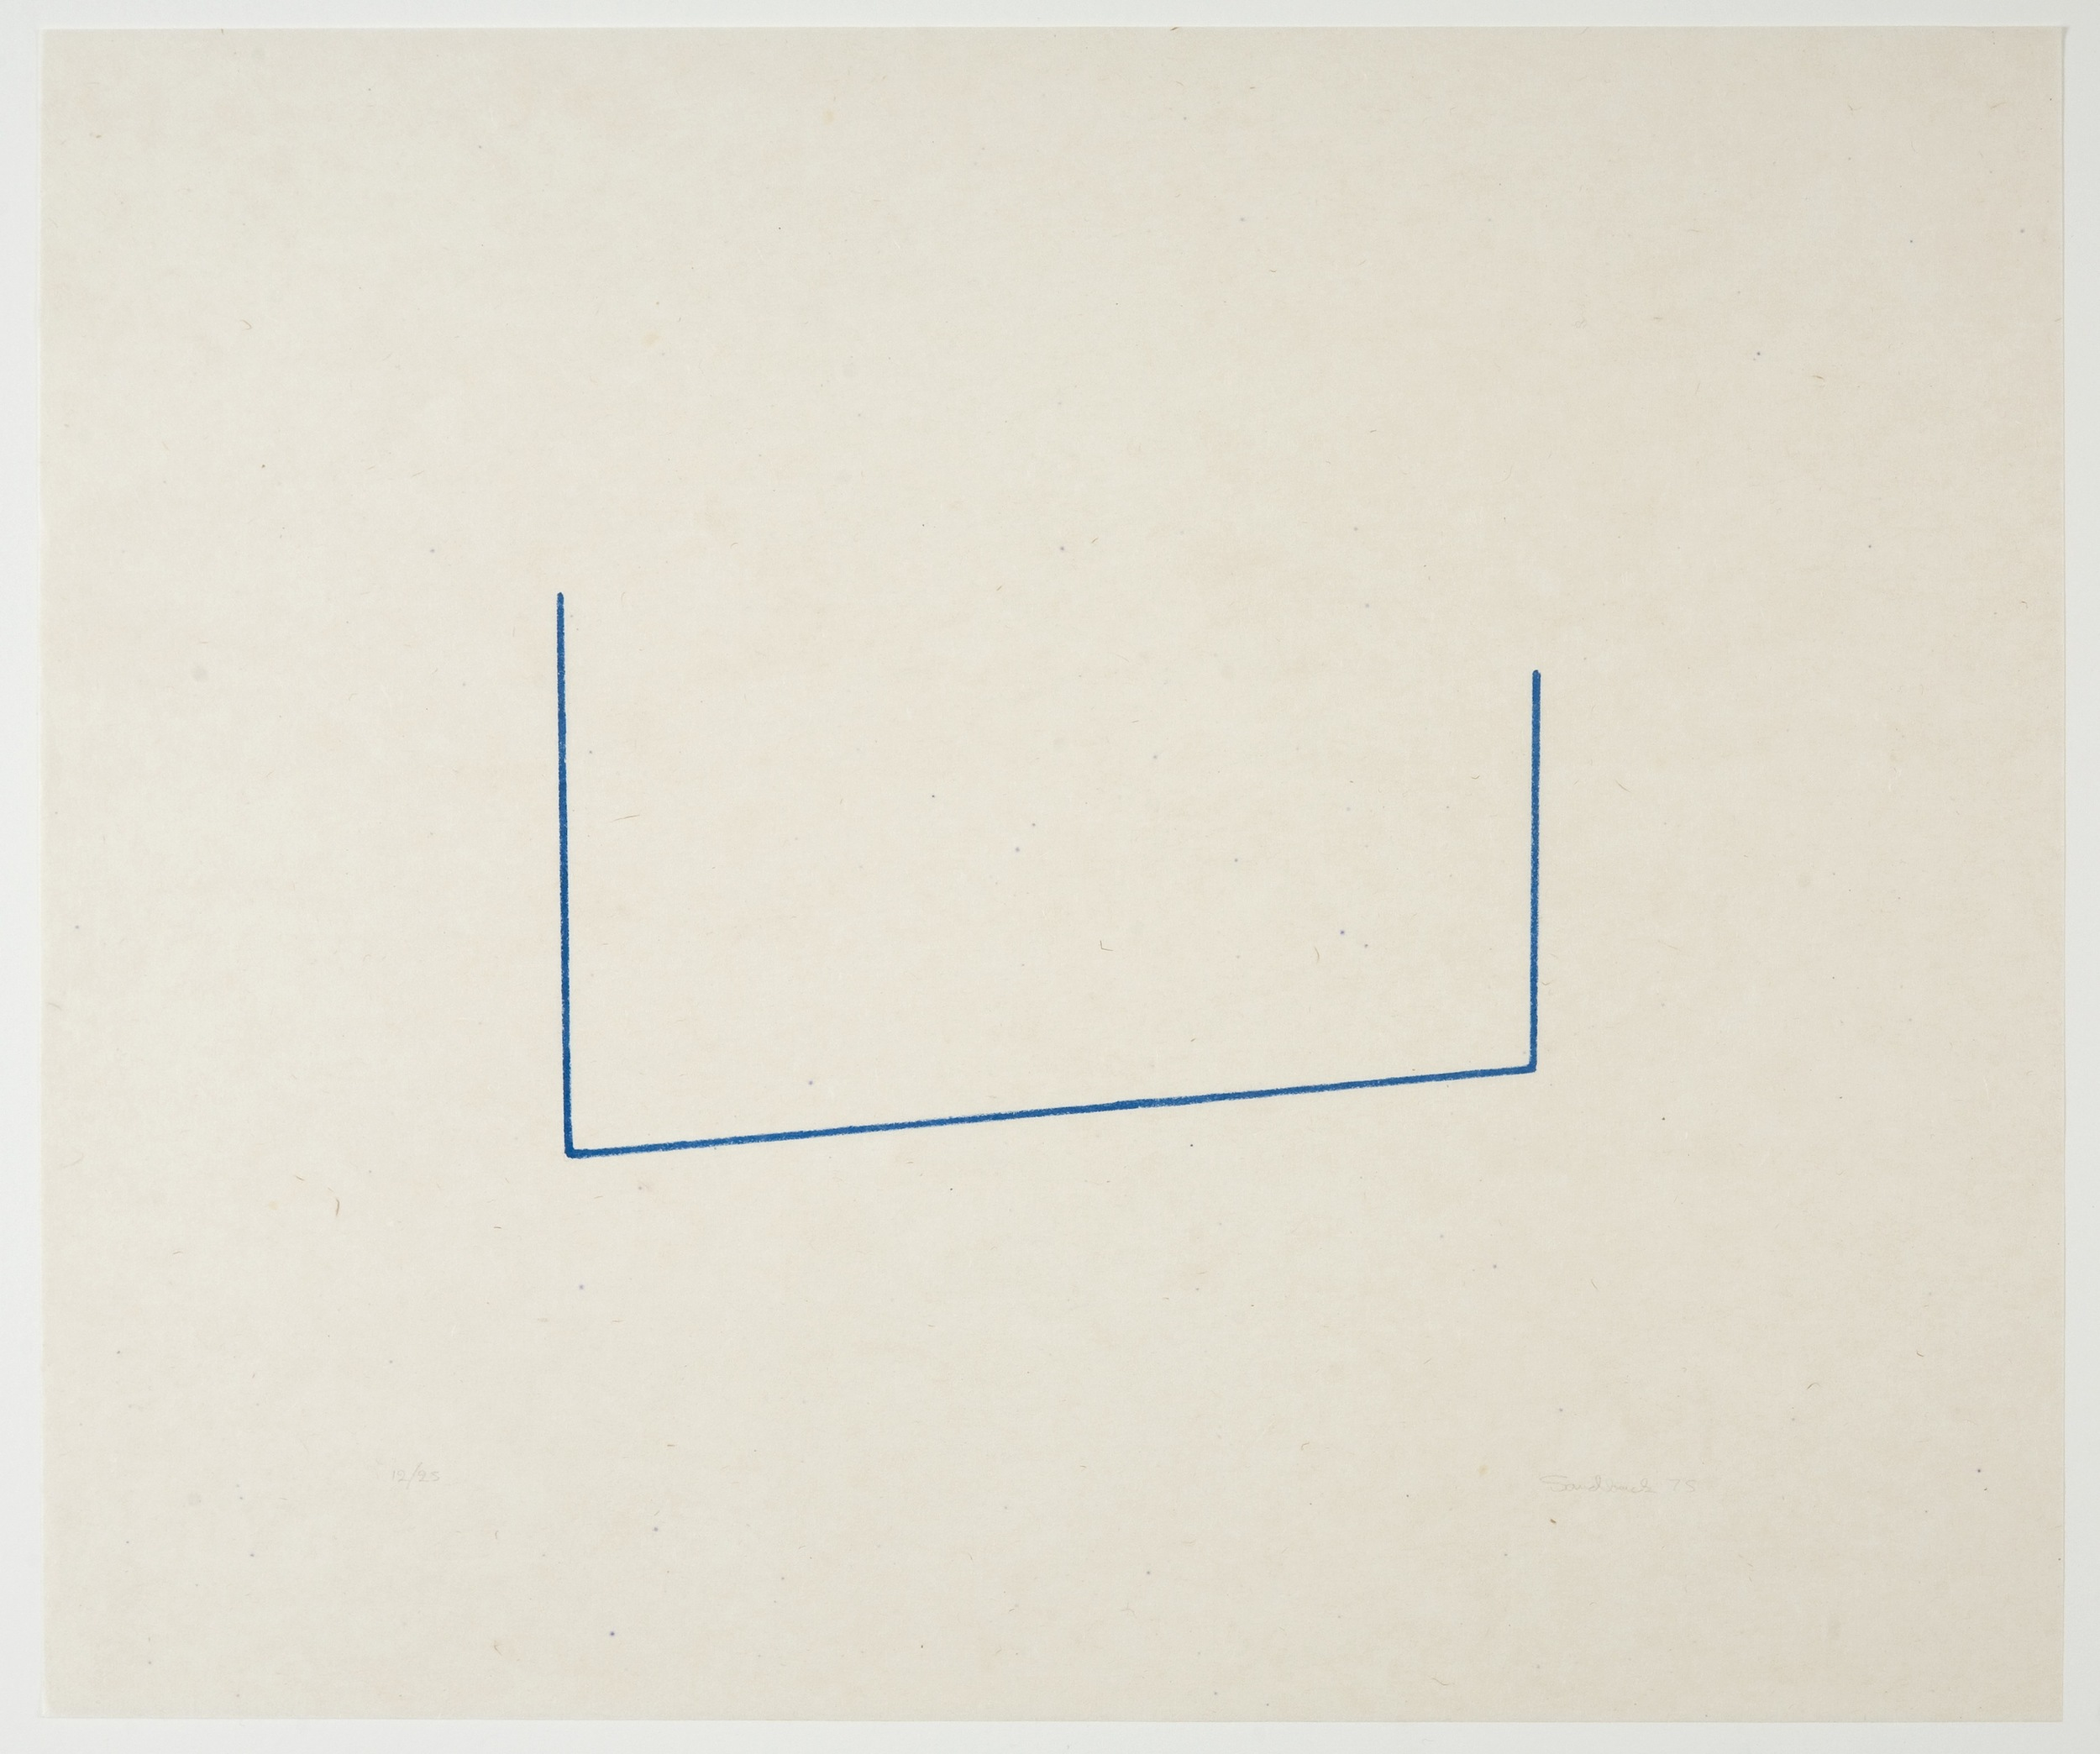 Fred Sandback, Untitled, 1975, Lithograph on paper